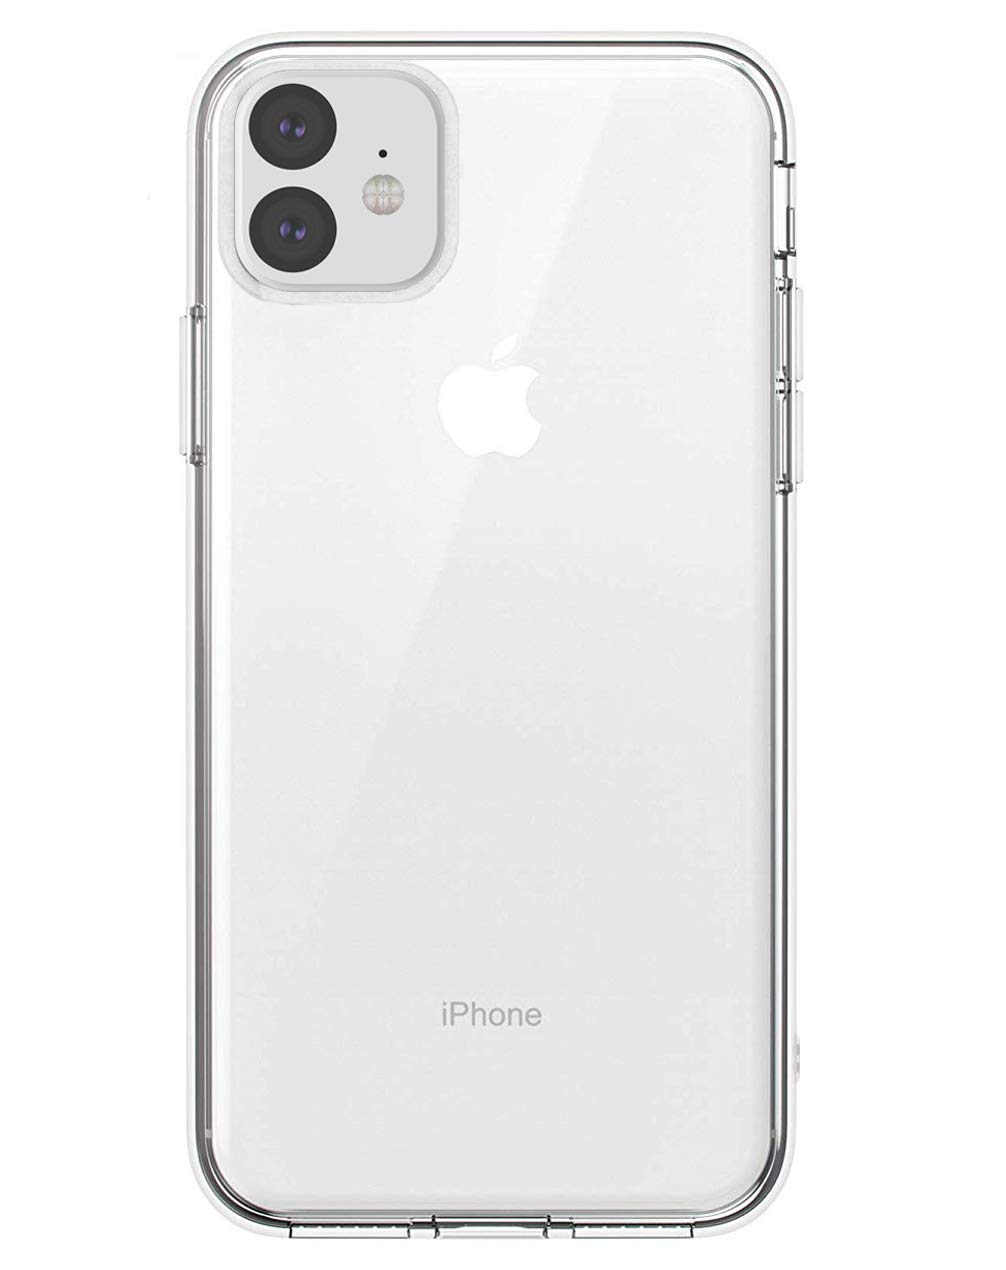 zisure 11 Cases Crystal Clear Soft TPU Cases Slim Fit for 6.1 inch iPhone 11